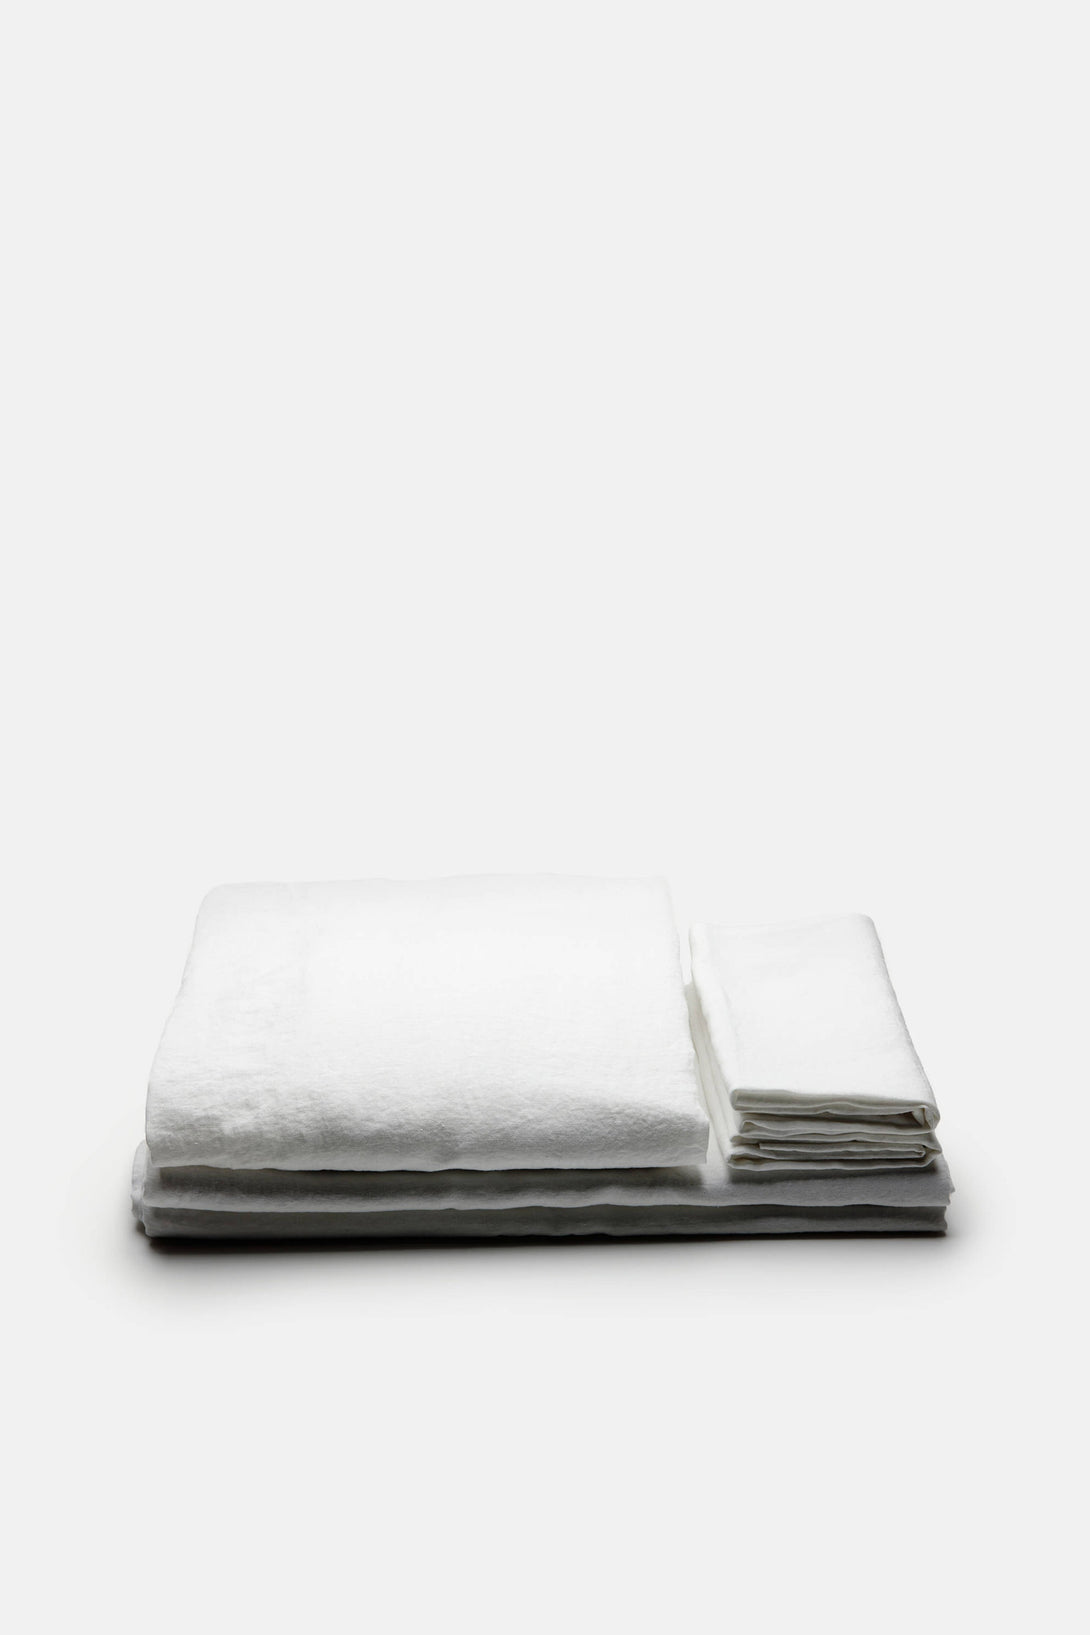 Linen Sheet Set (Flat, Fitted, 2 Pillowcases) - Queen